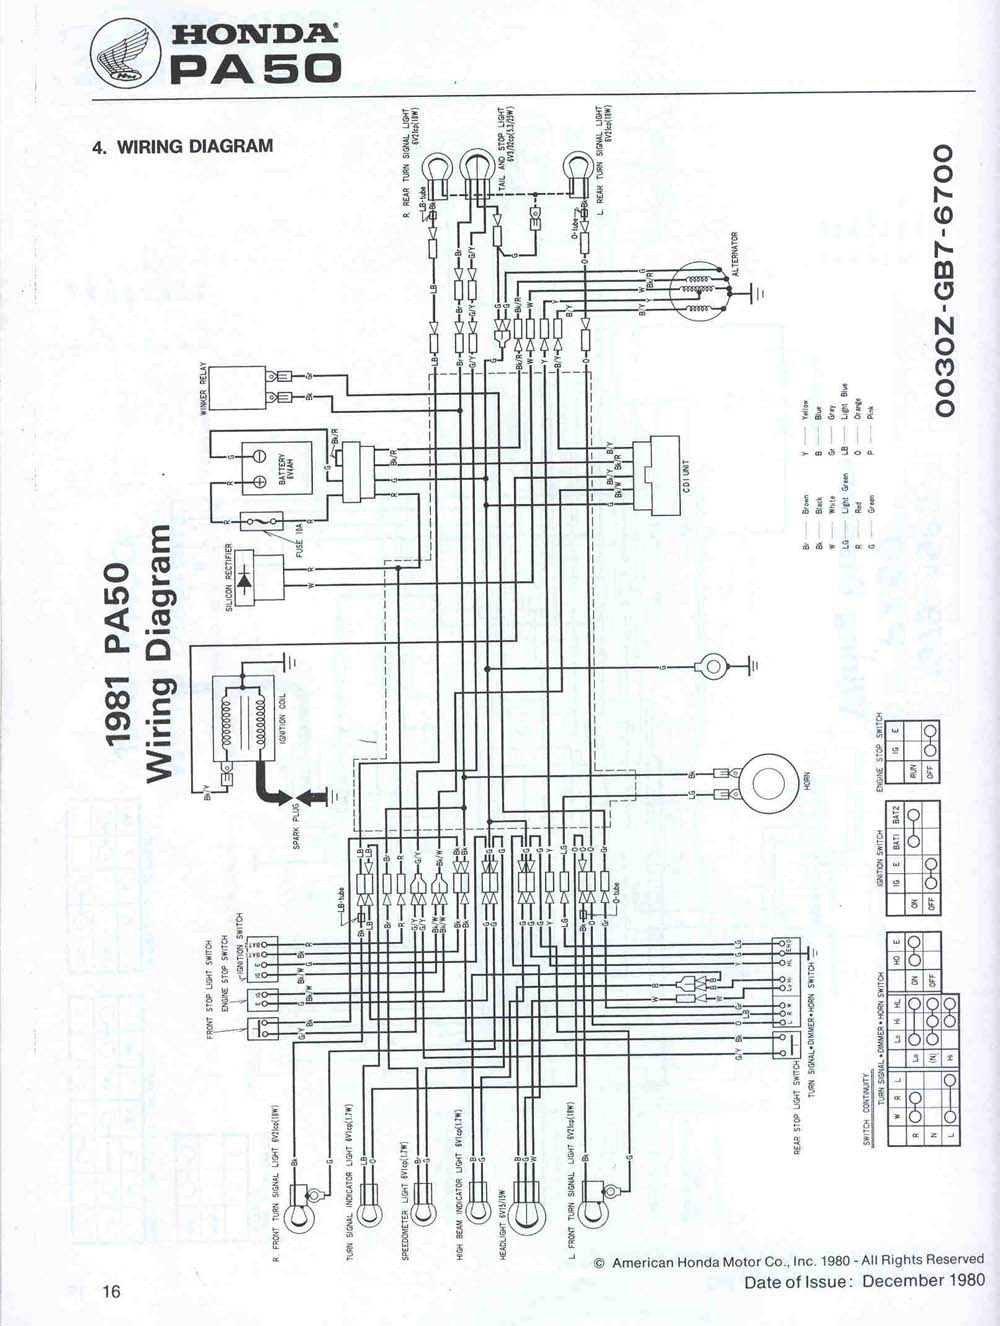 honda hobbit moped cdi wiring diagram